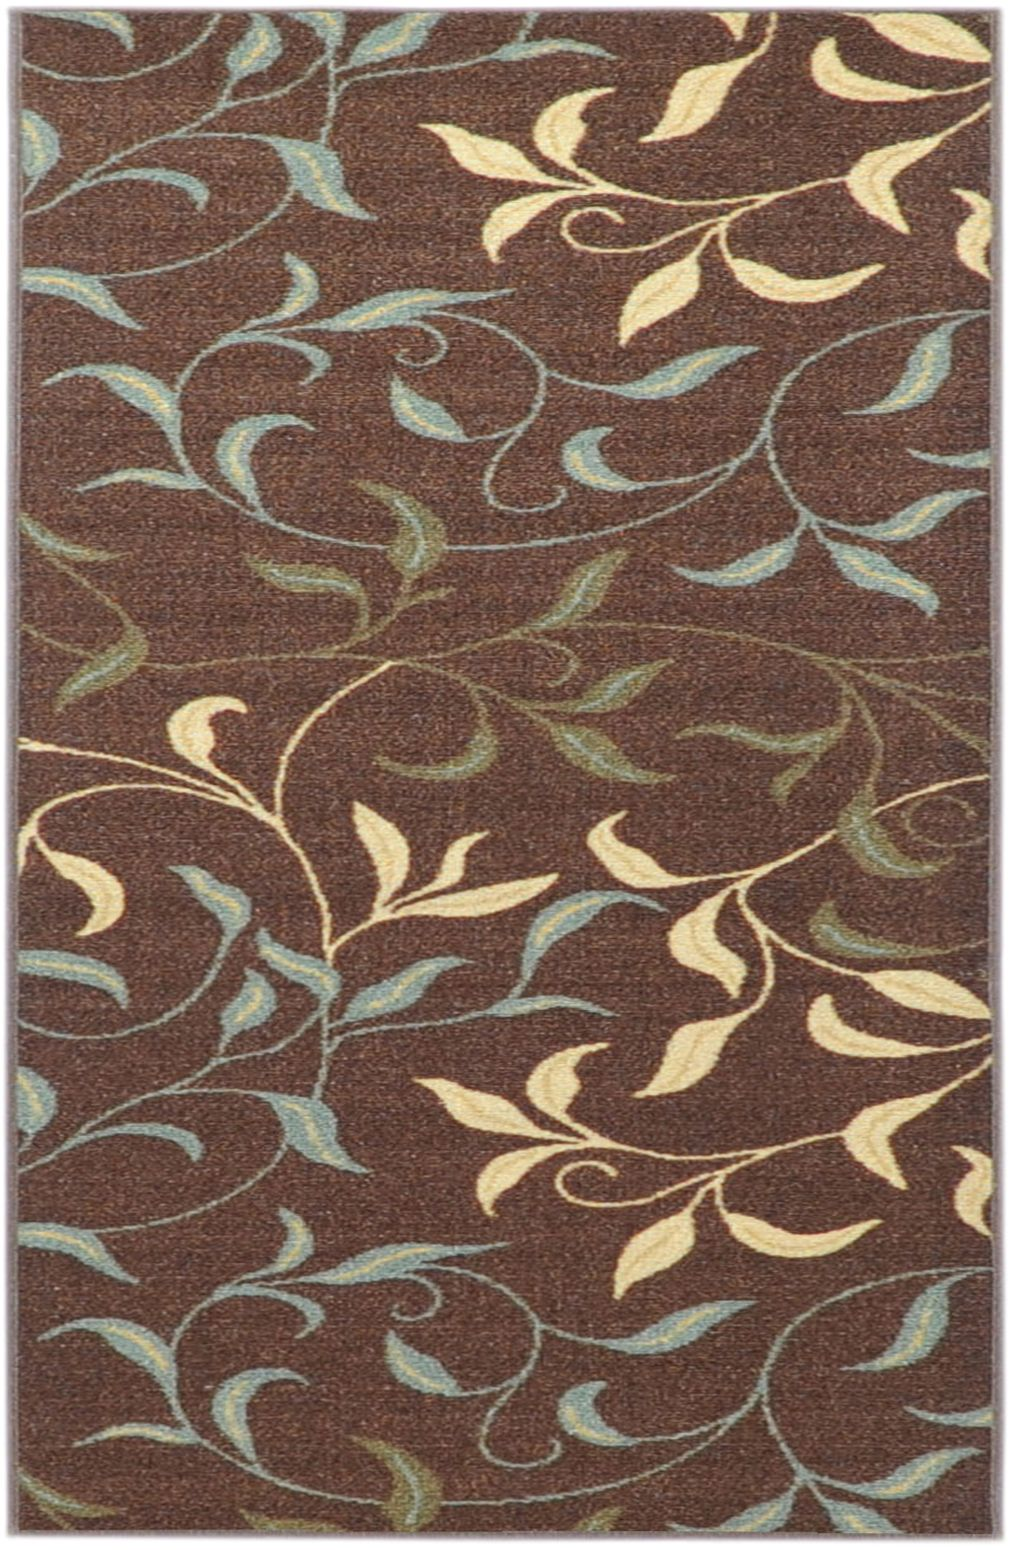 Bathroom rugs with rubber backing - Kitchen Rubber Backed Runner Rugs Rubber Back Non Skid Brown Modern